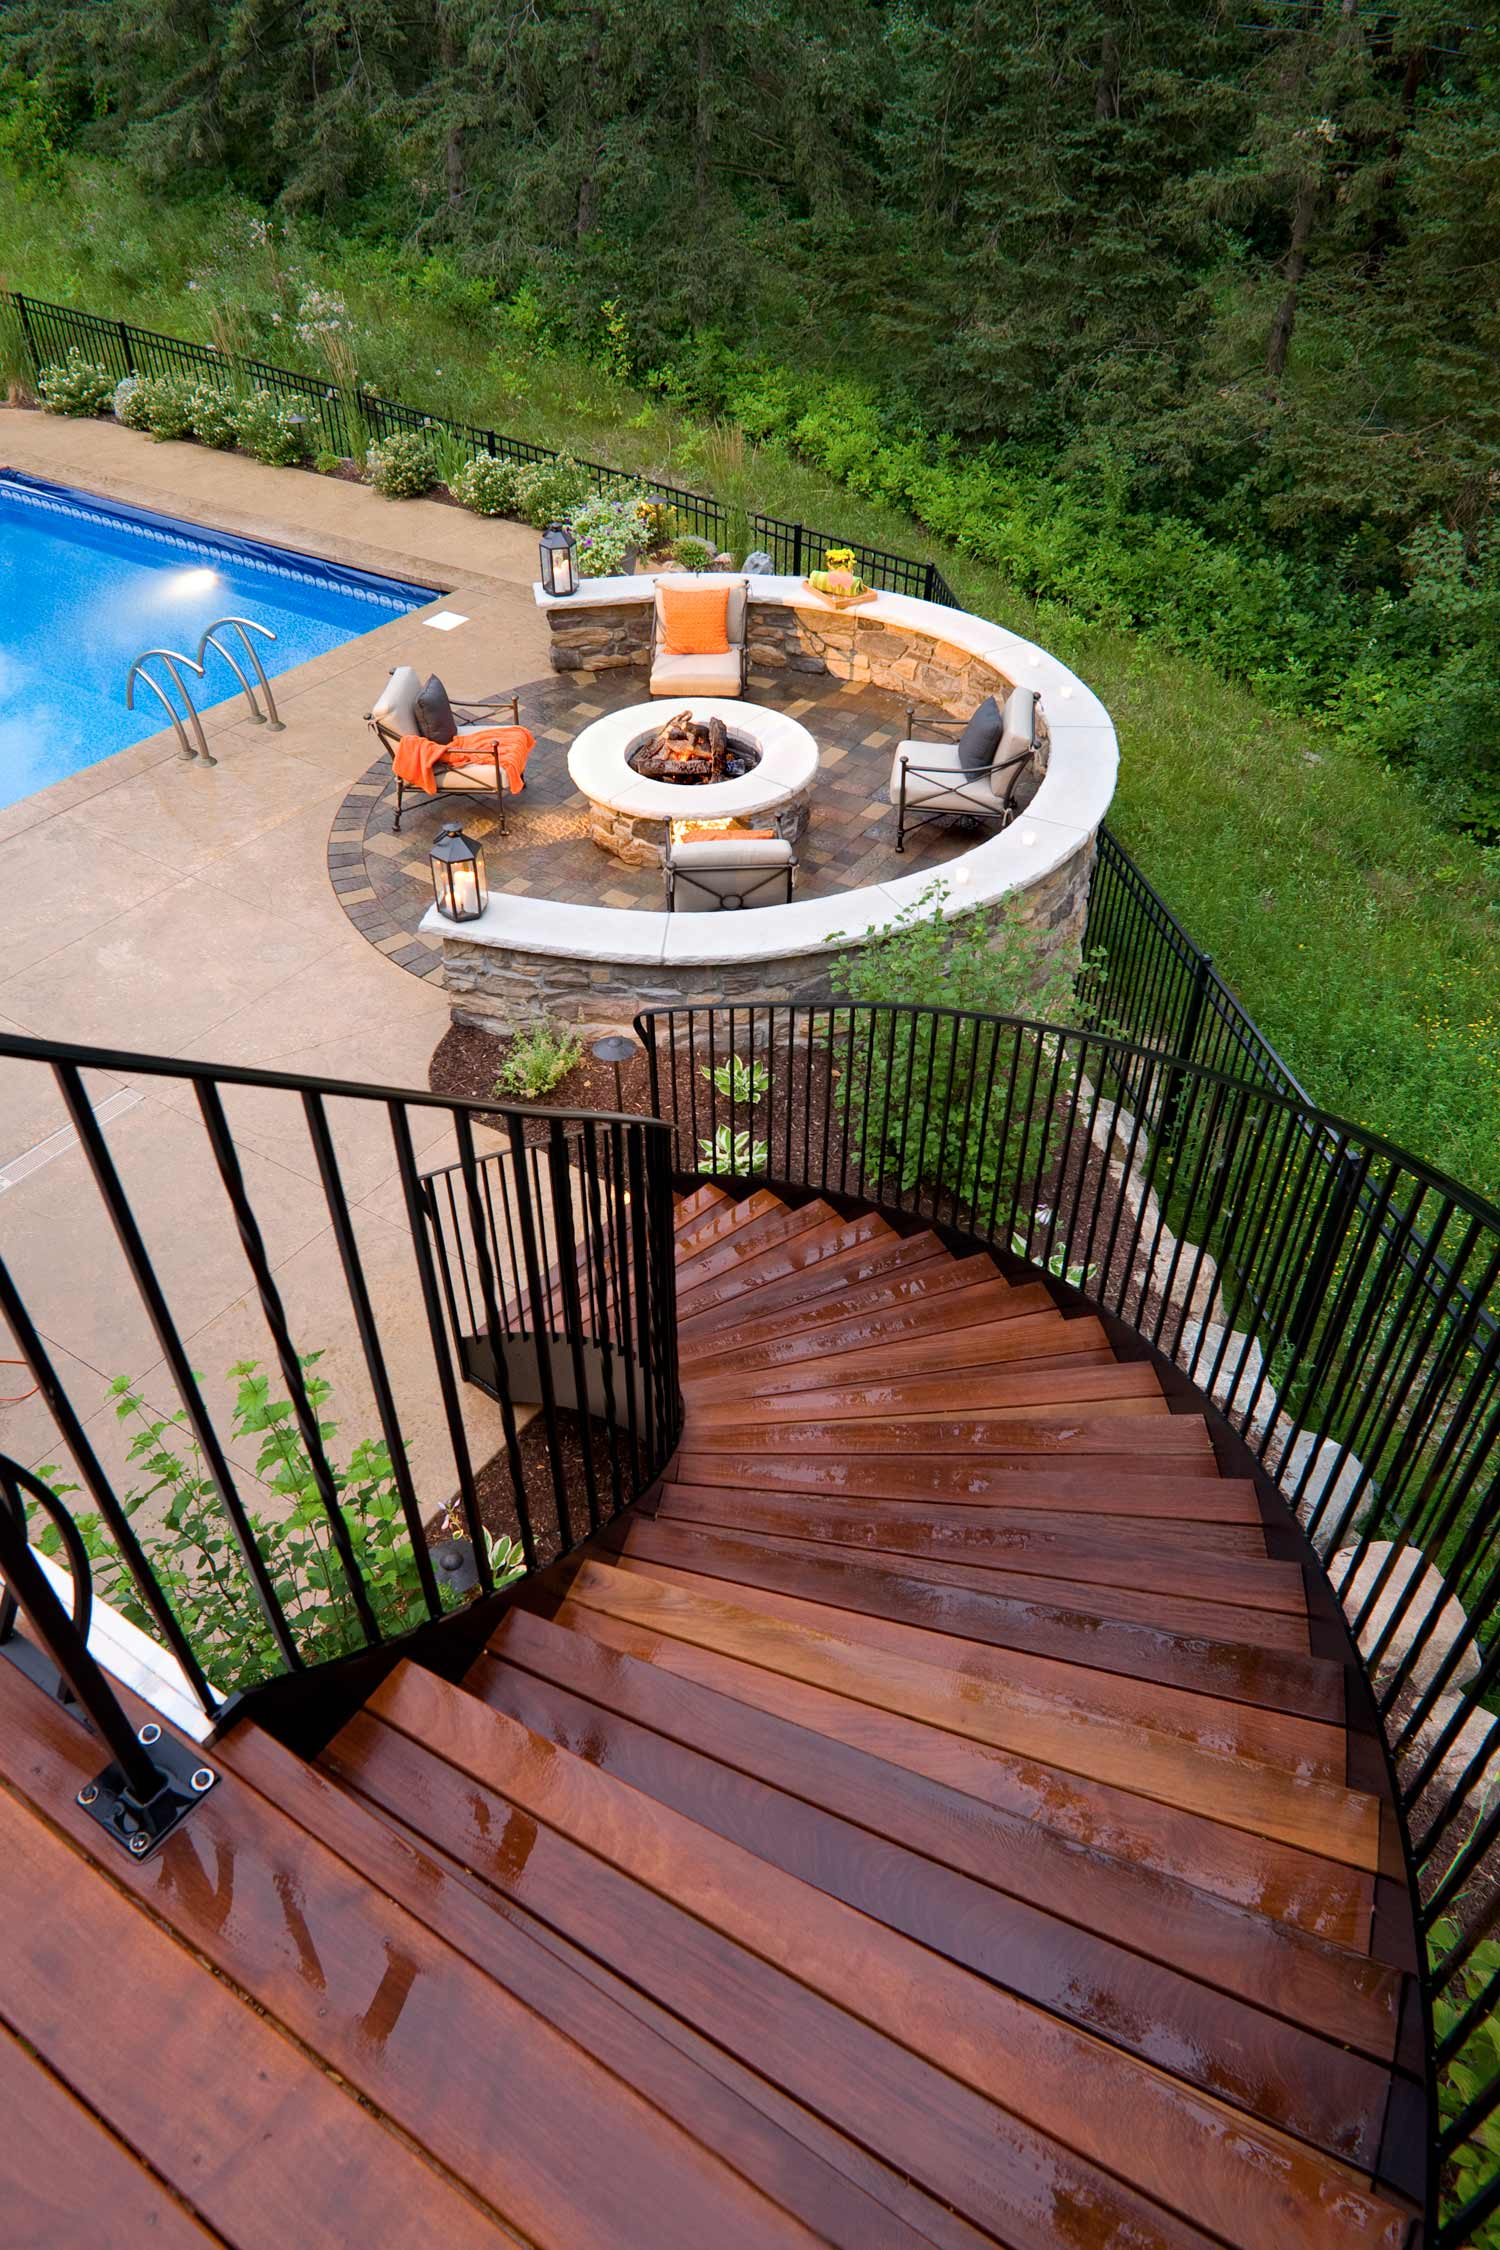 Curving staircase leads to a fire patio